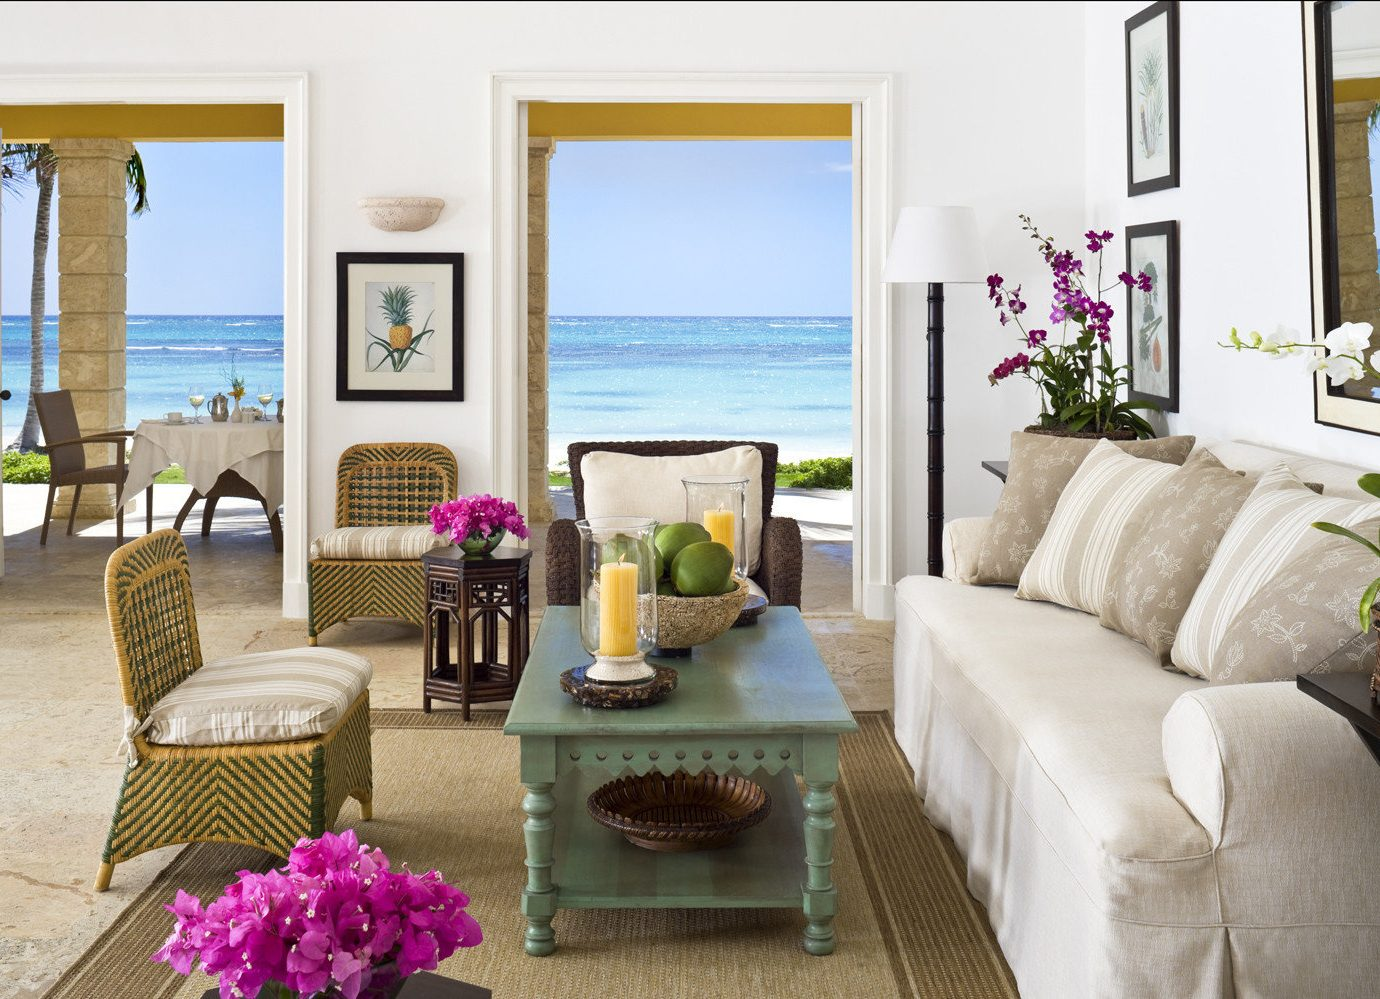 Living Room At Tortuga Bay Hotel In Dominican Republic